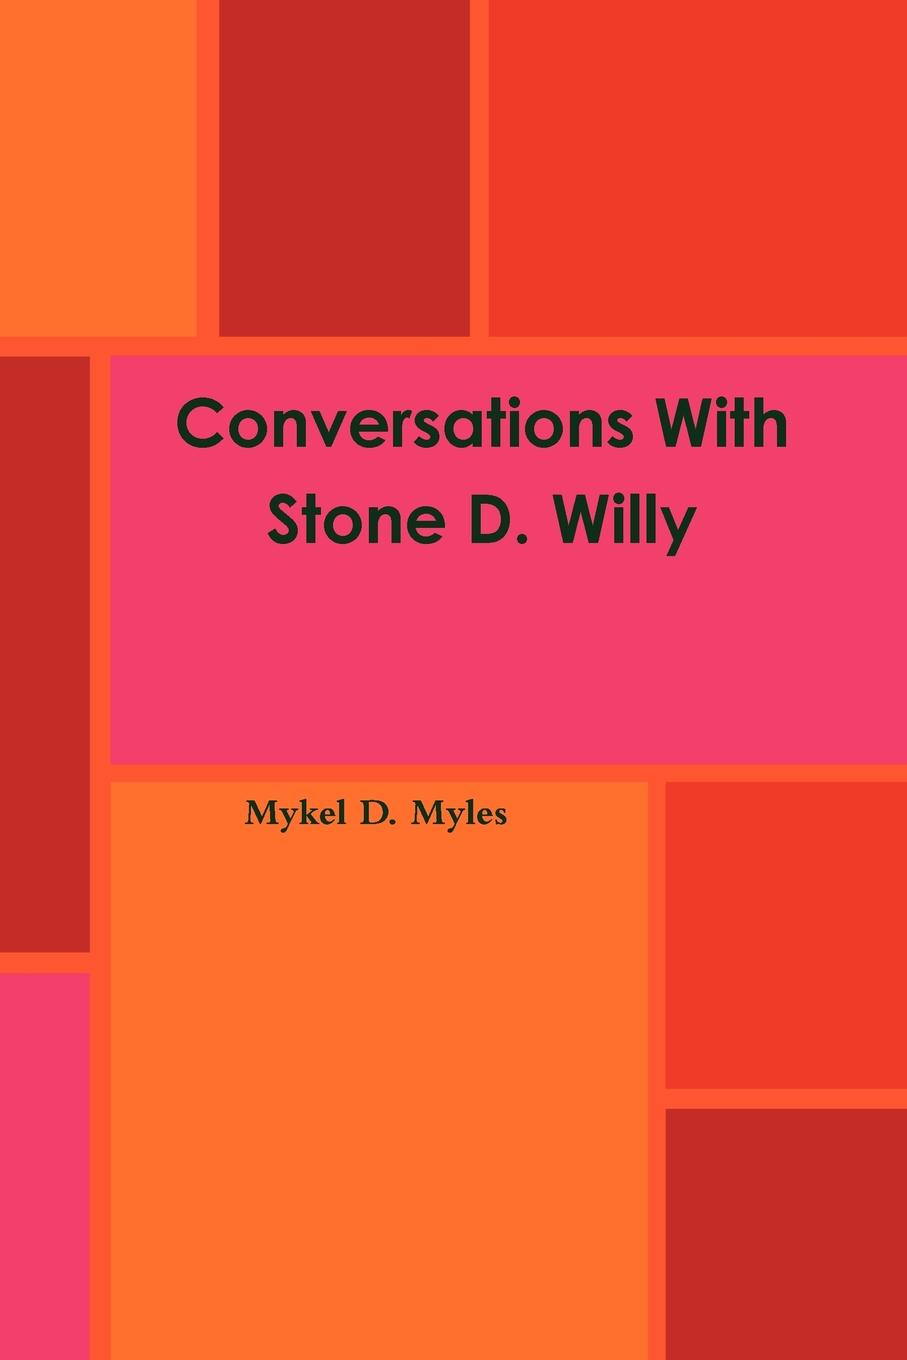 Mykel D. Myles Conversations With Stone D. Willy d 58